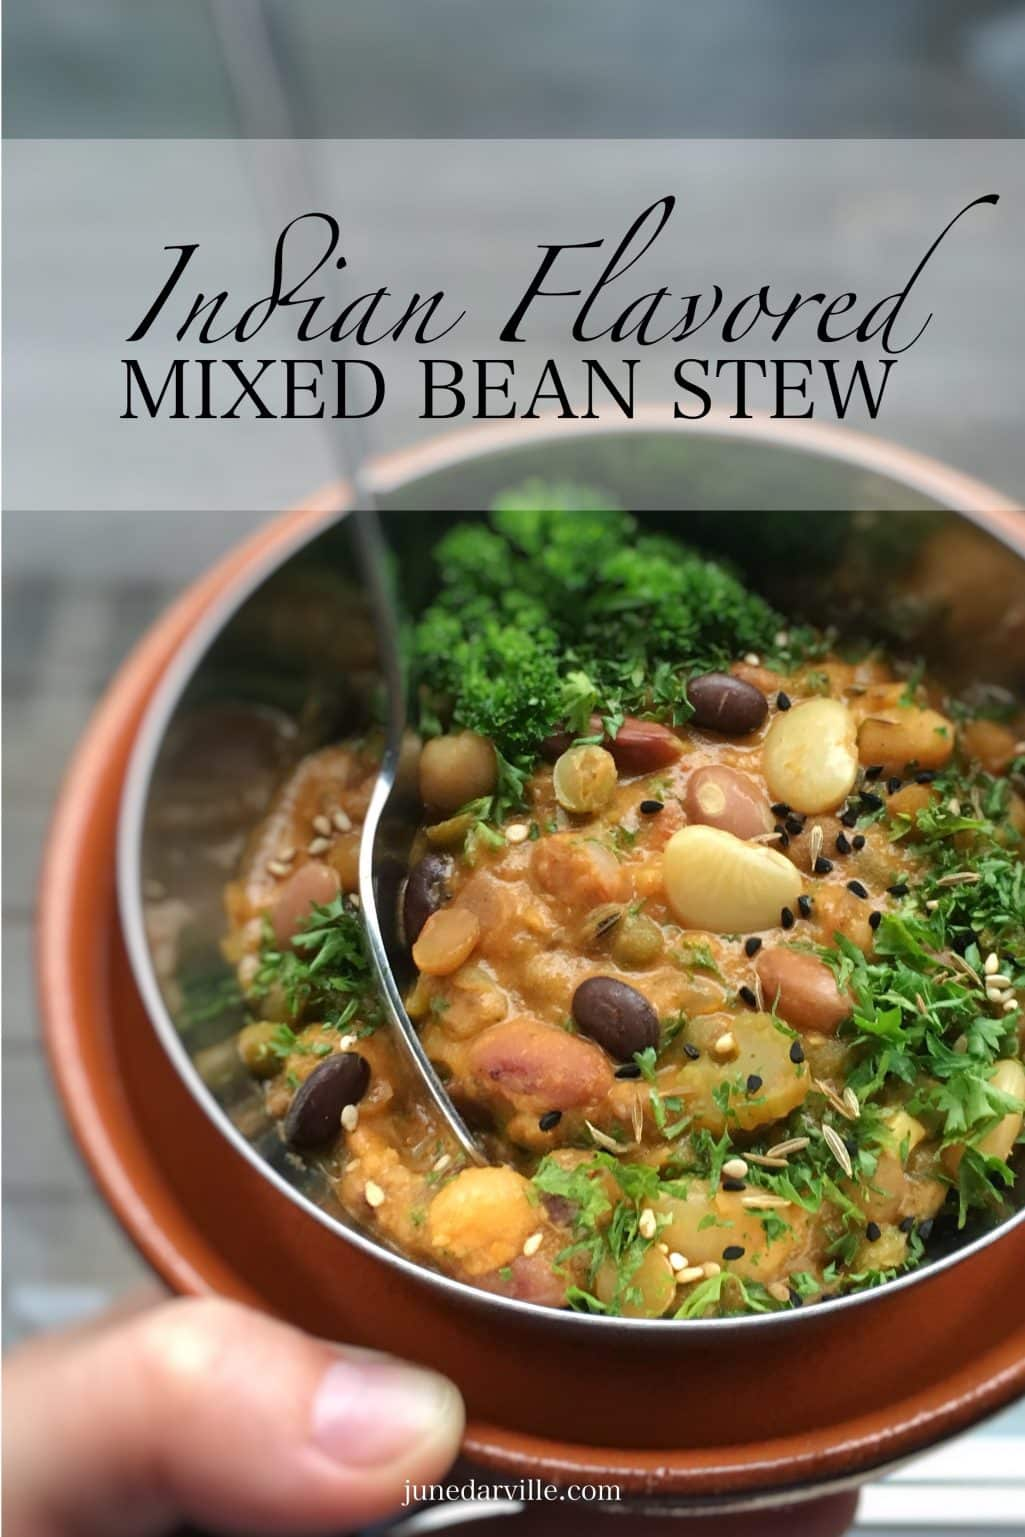 I used a bunch of Indian spices here in combination with dried beans, tomatoes and yogurt... this mixed bean stew is deliciously spicy and creamy!